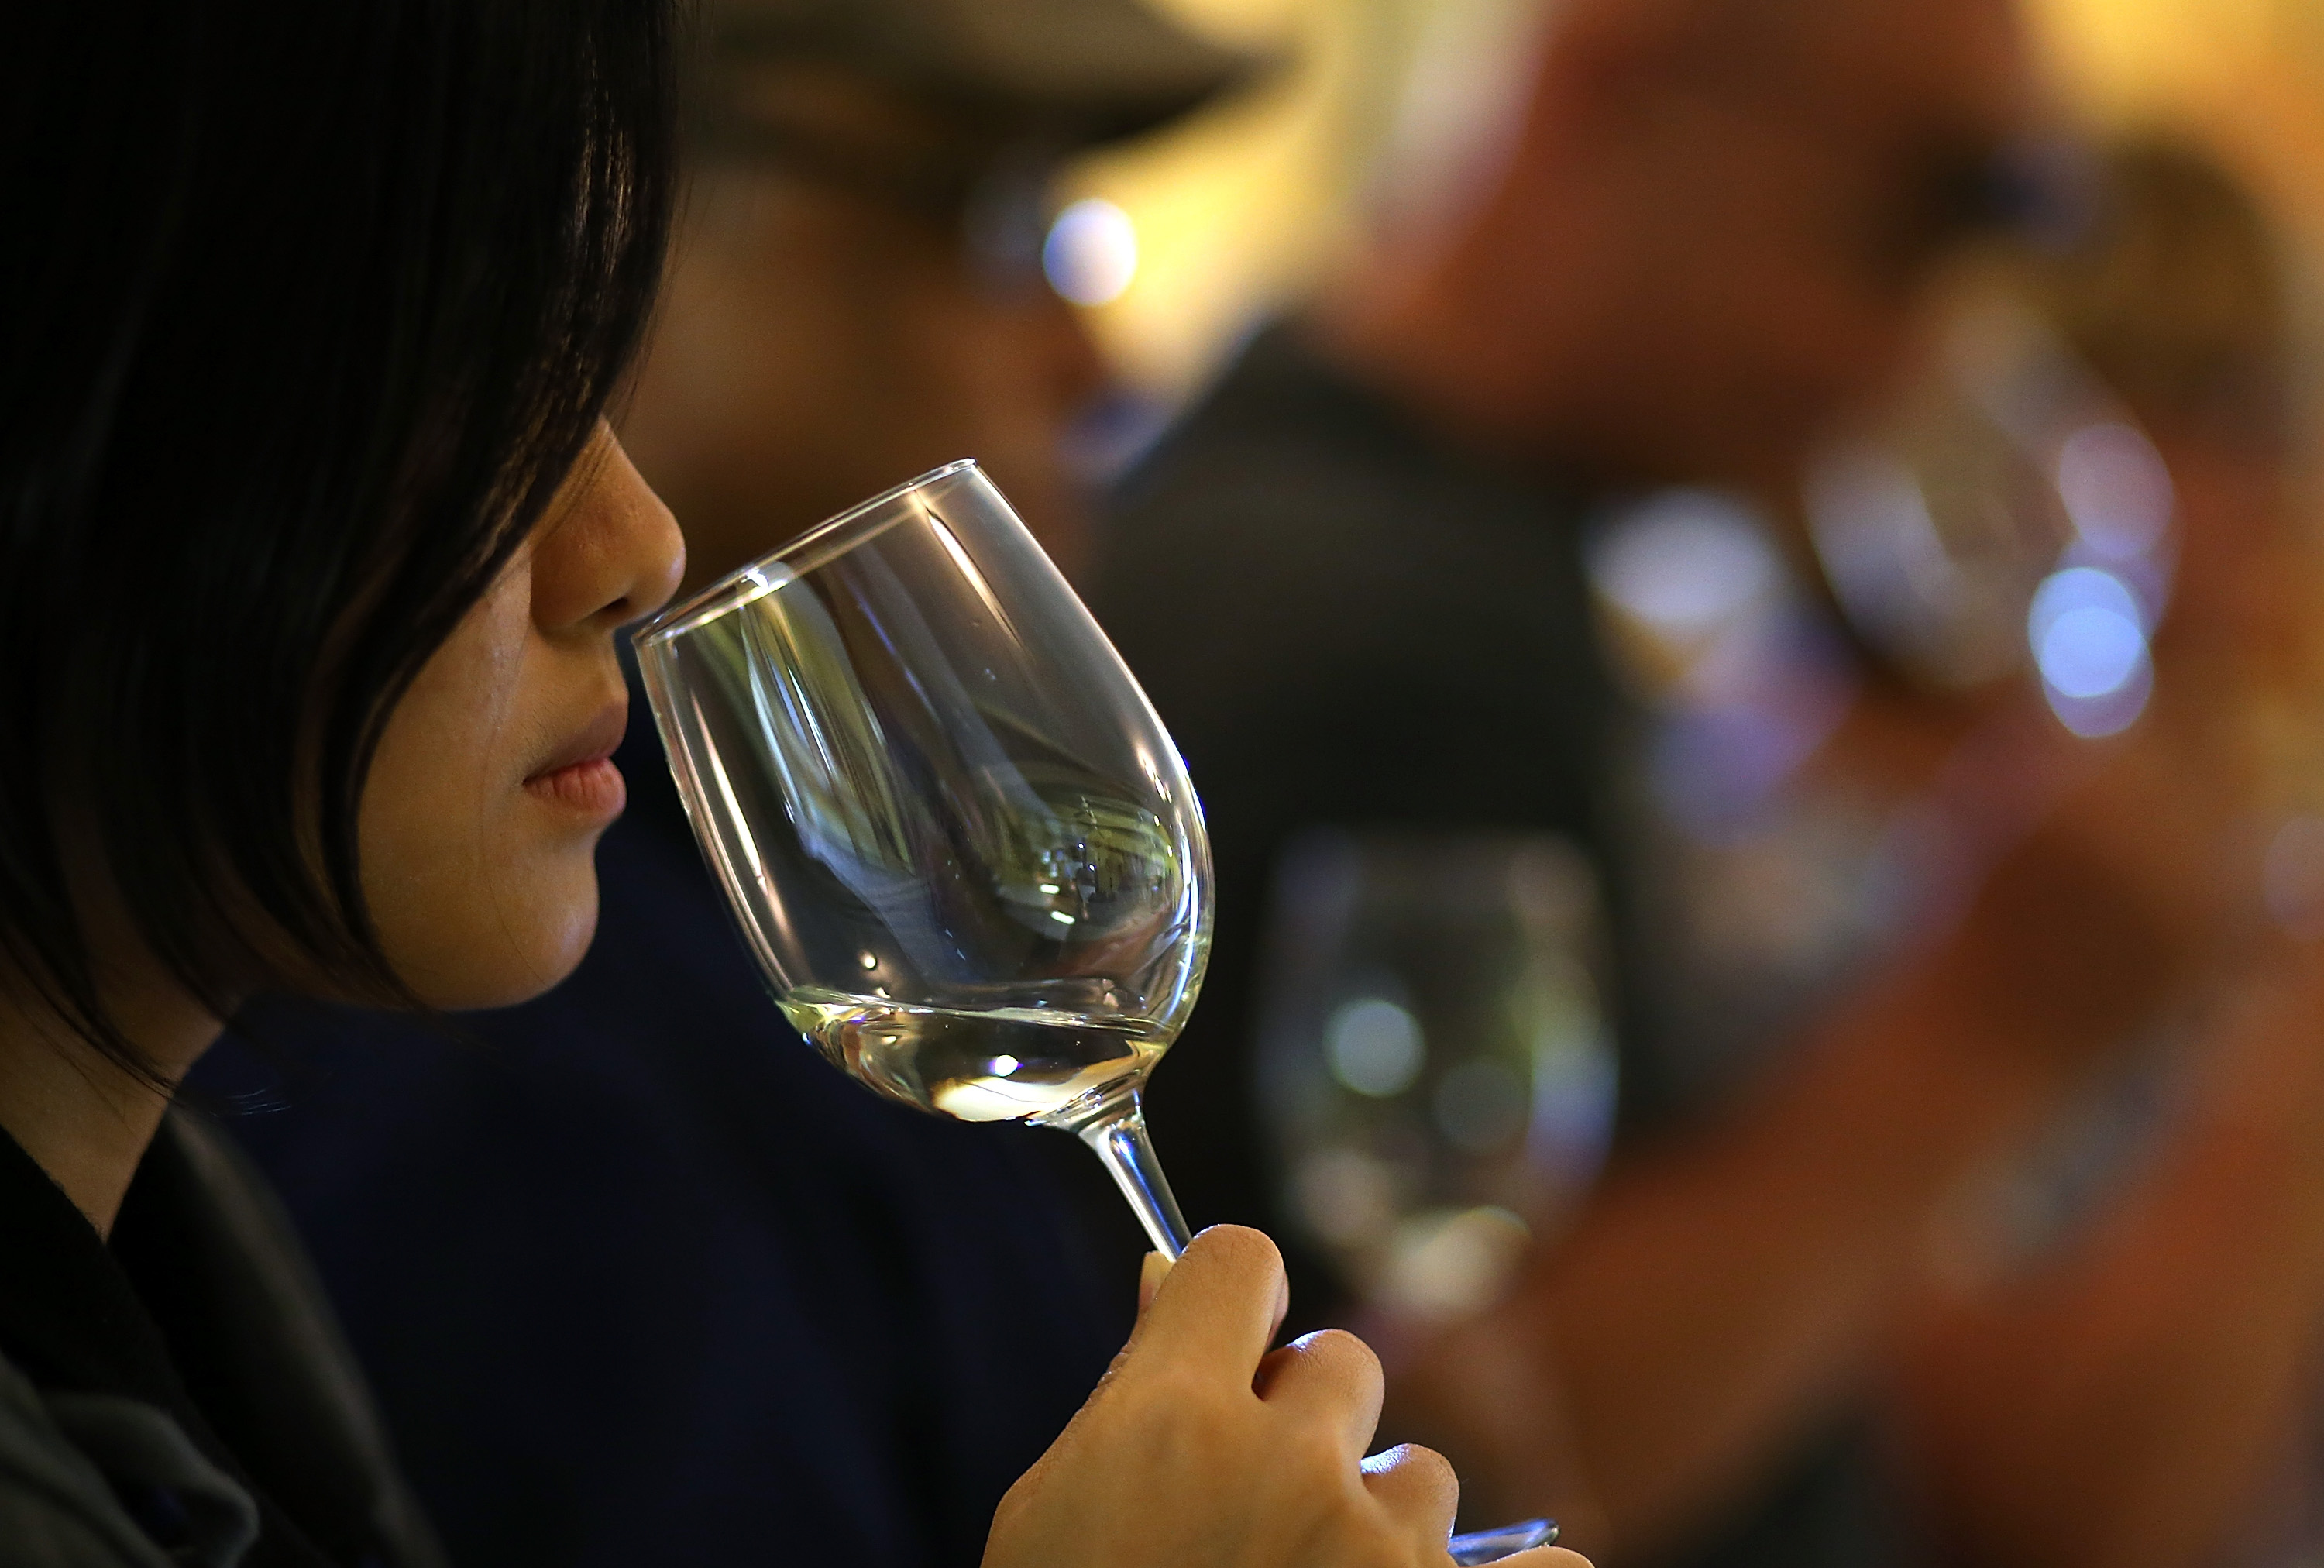 The 10 best places for wine tours in america might surprise you so the 10 best places for wine tours in america might surprise you so pour yourself a glass and settle in solutioingenieria Images